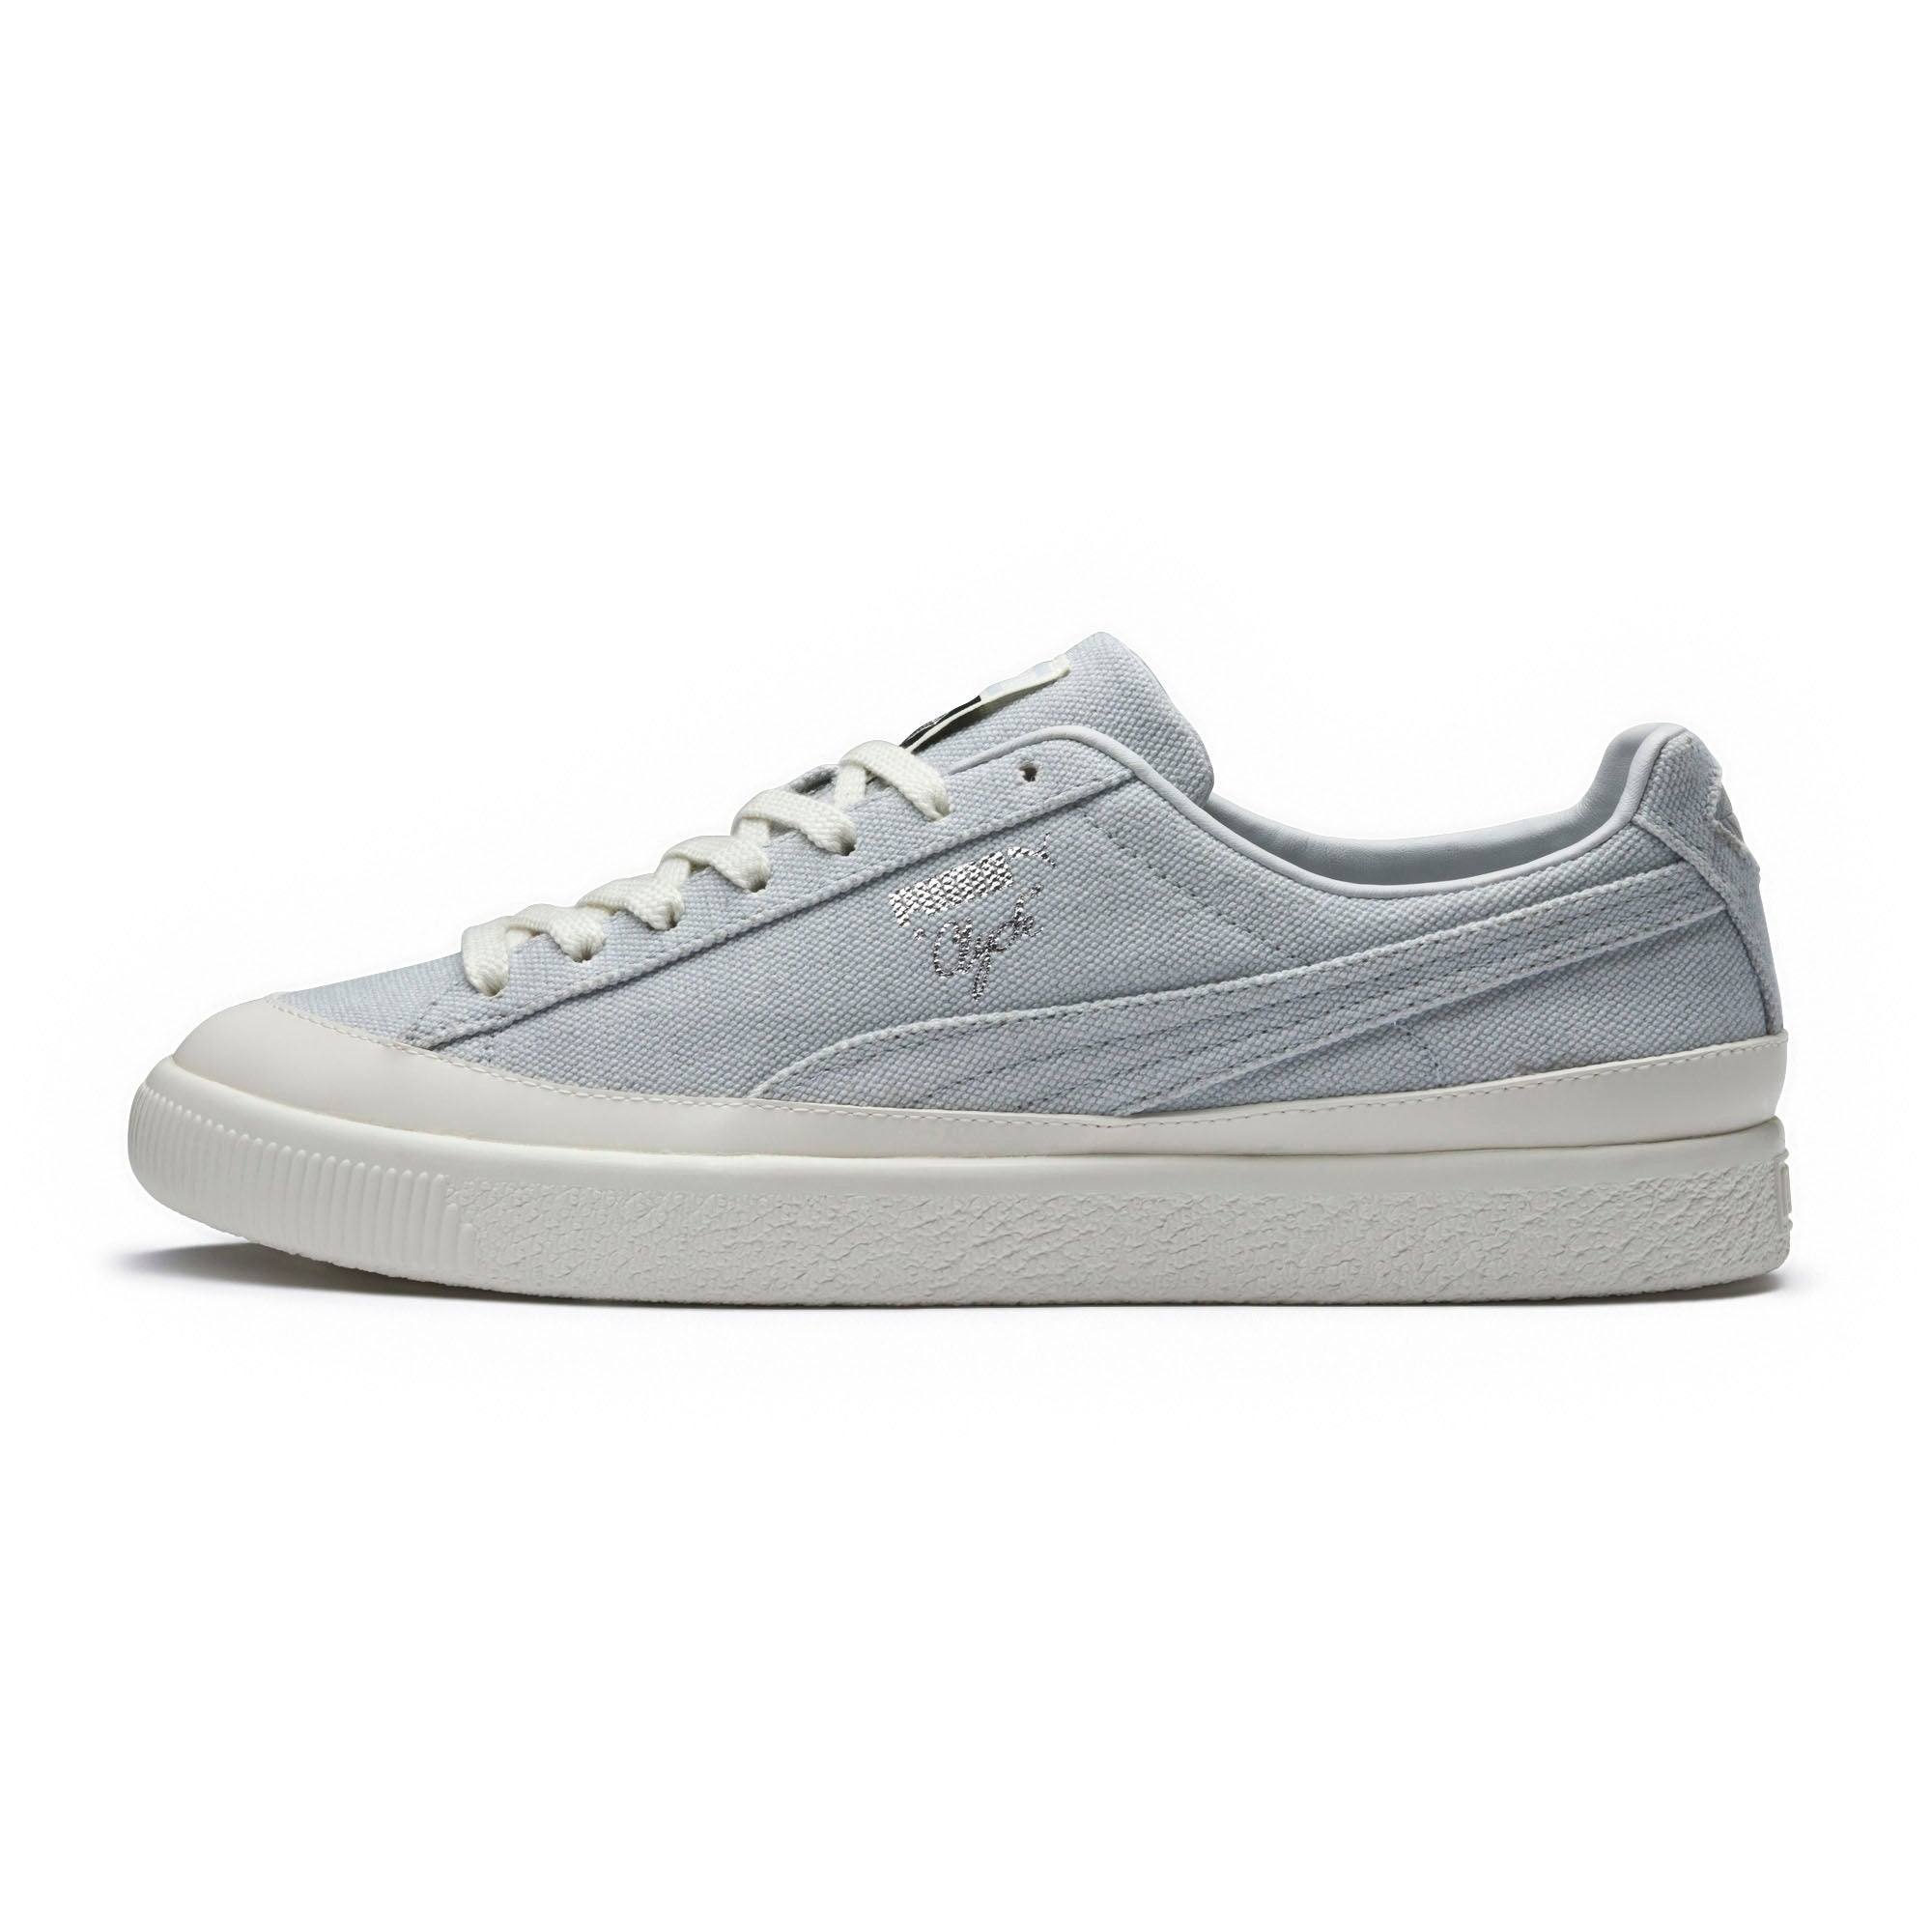 73724c04a31 Diamond Supply Co. Diamond X Puma Clyde